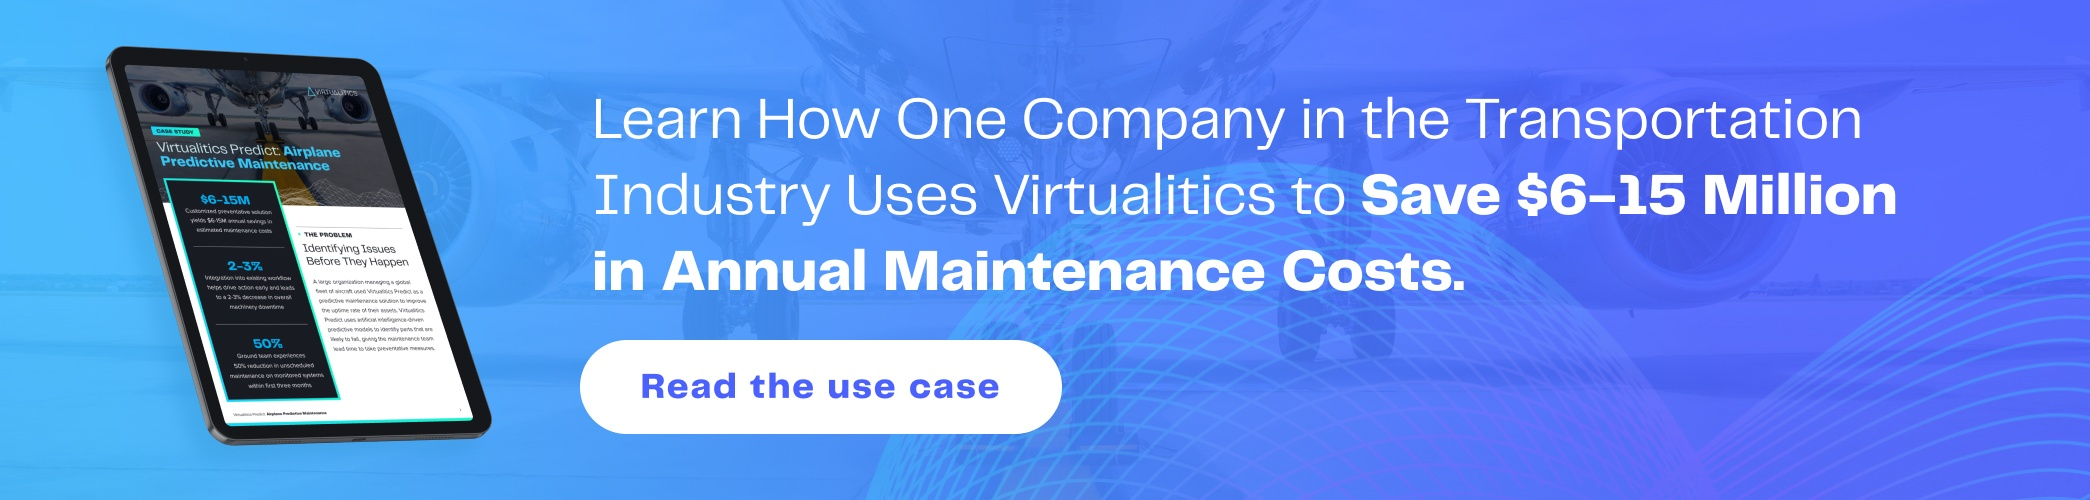 Learn how one company in the transportation industry uses Virtualitics to save $6-15 million in annual maintenance costs